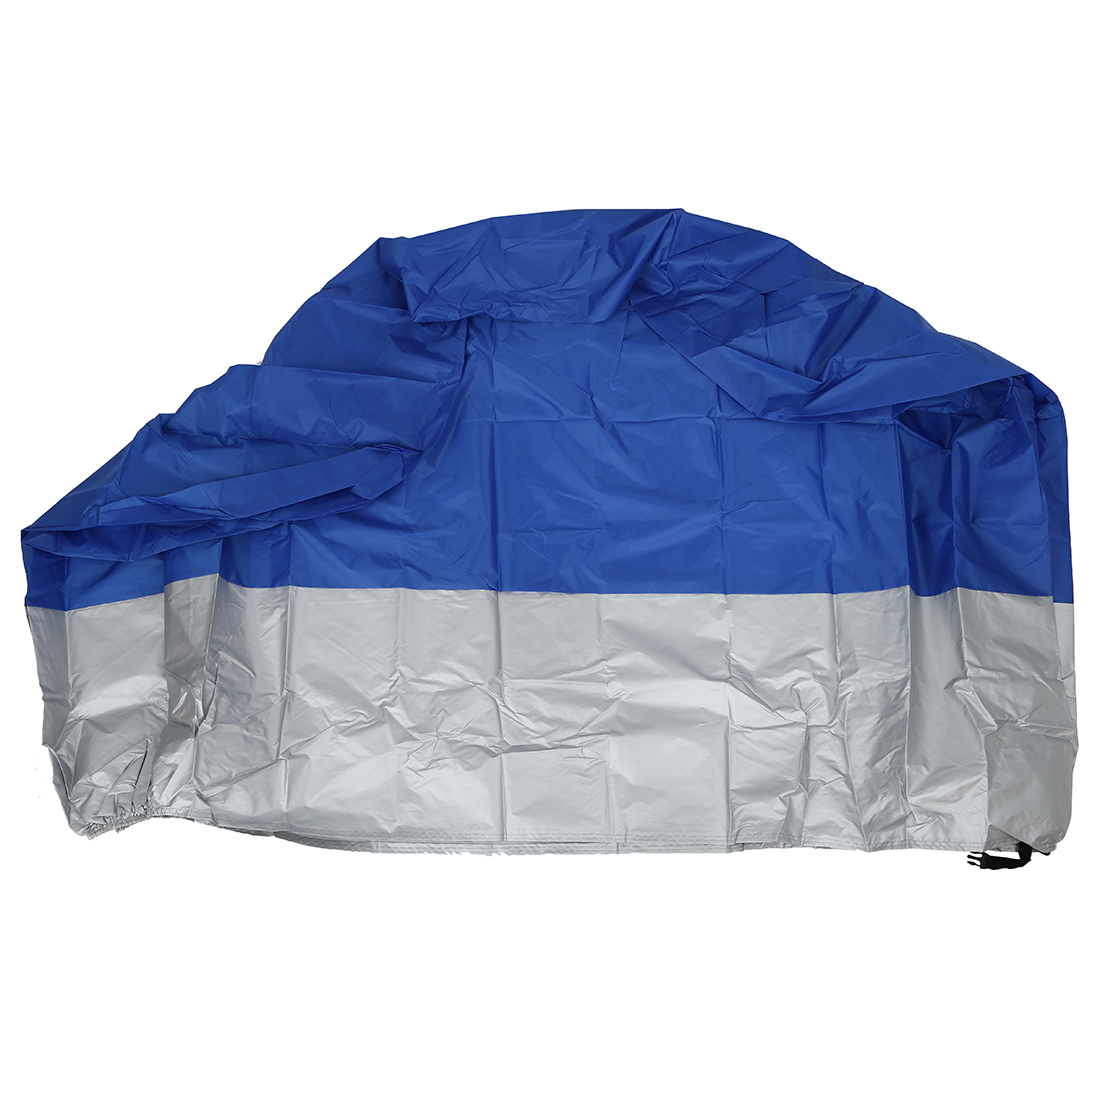 Motorcycle Bike Moped Scooter Cover Waterproof Rain UV Dust Prevention Dustproof Covering XXL moto couverture